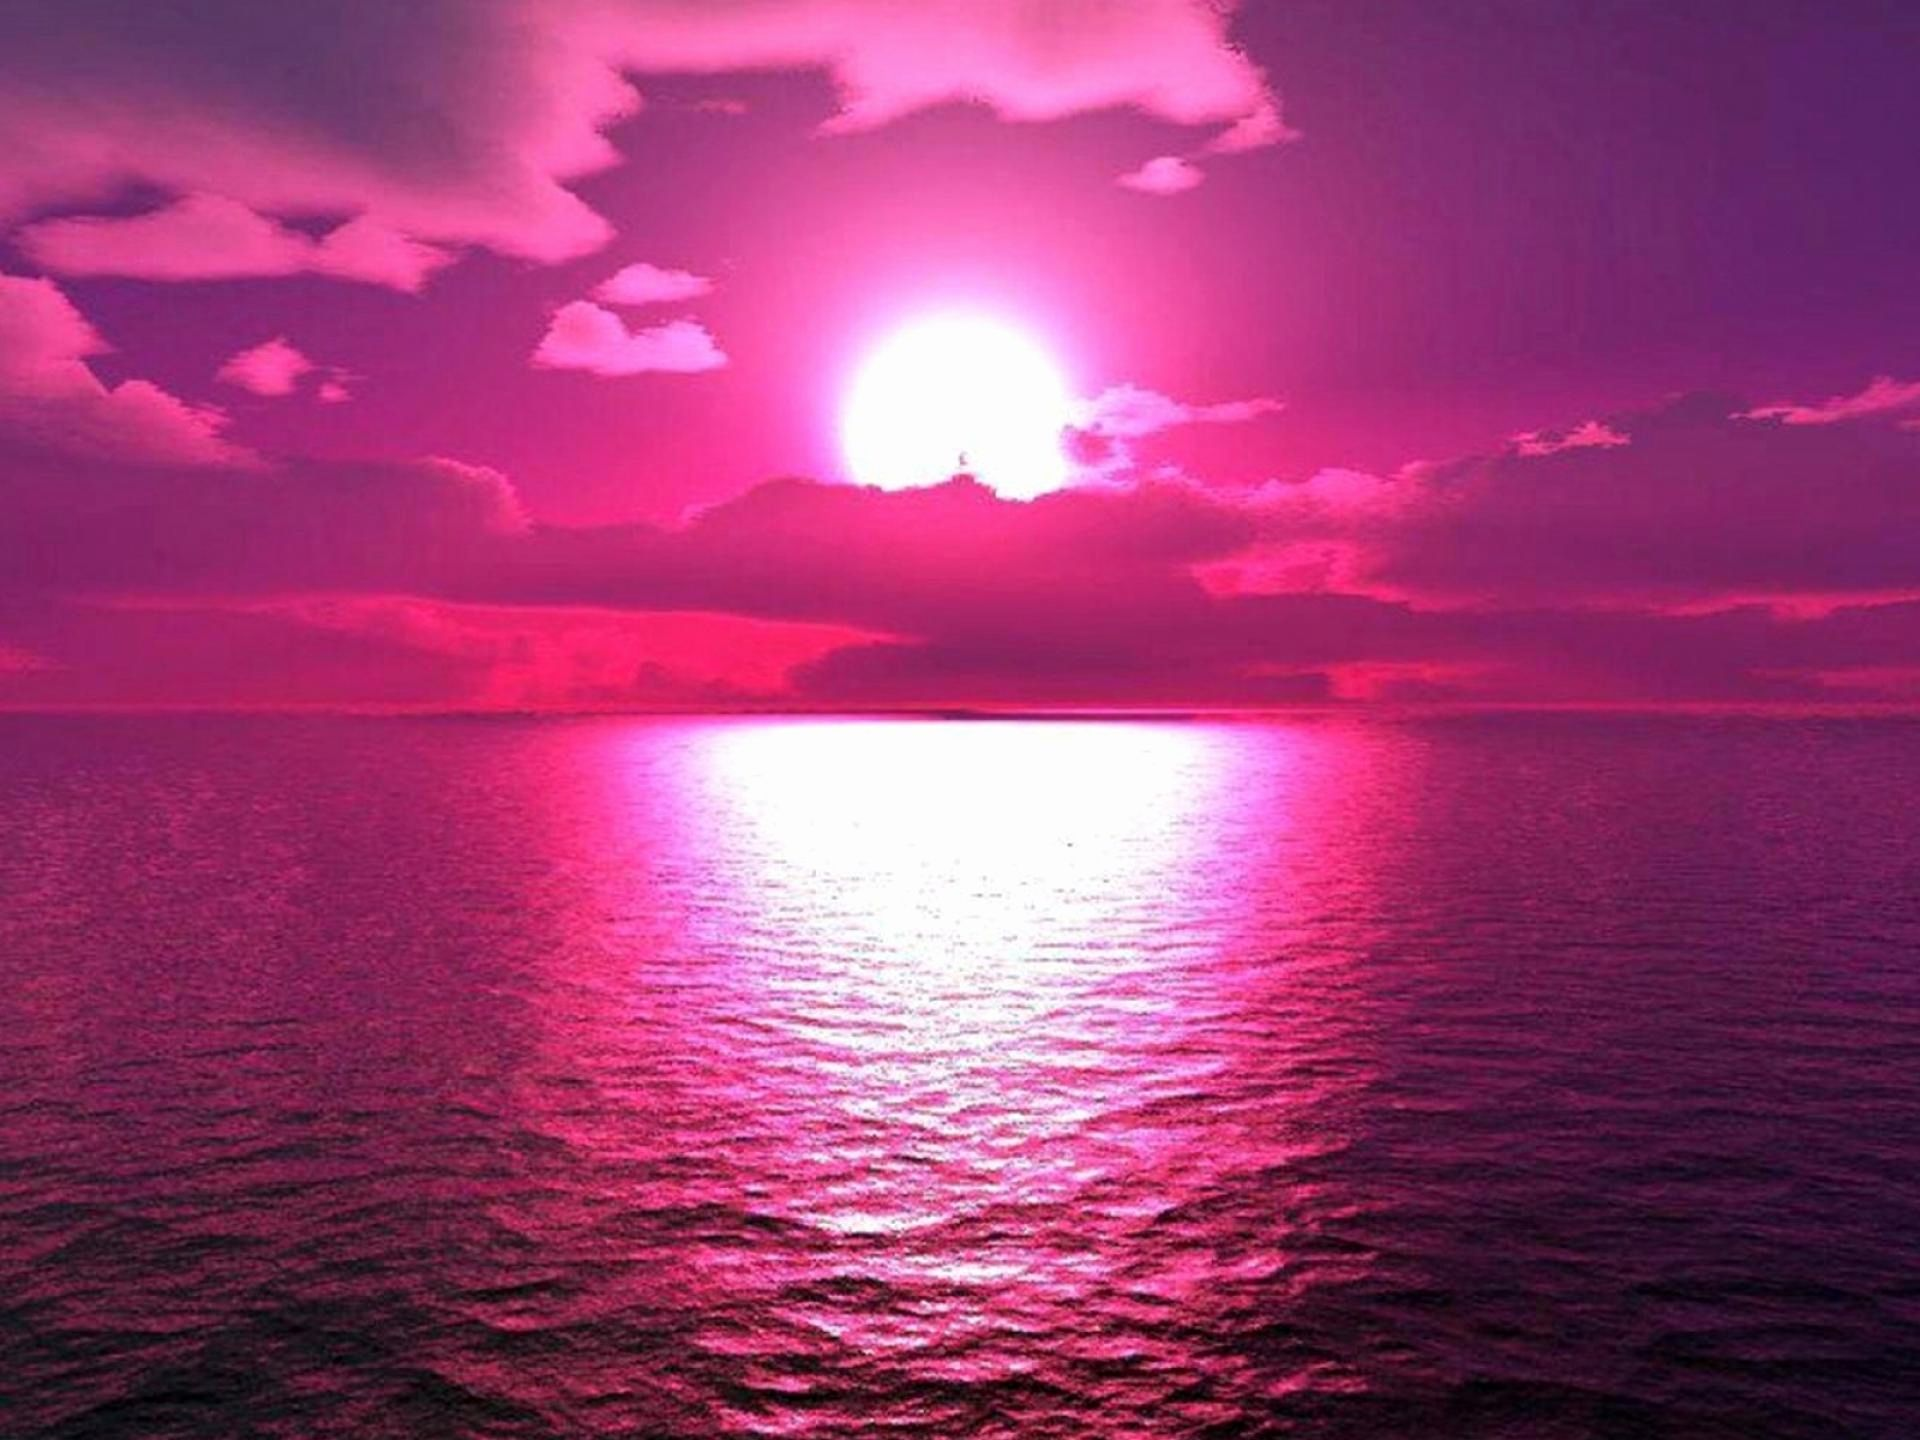 Hot Pink Aesthetic Wallpapers Top Free Hot Pink Aesthetic Backgrounds Wallpaperaccess Video game, space engine, aesthetic, horizon, planet. hot pink aesthetic wallpapers top